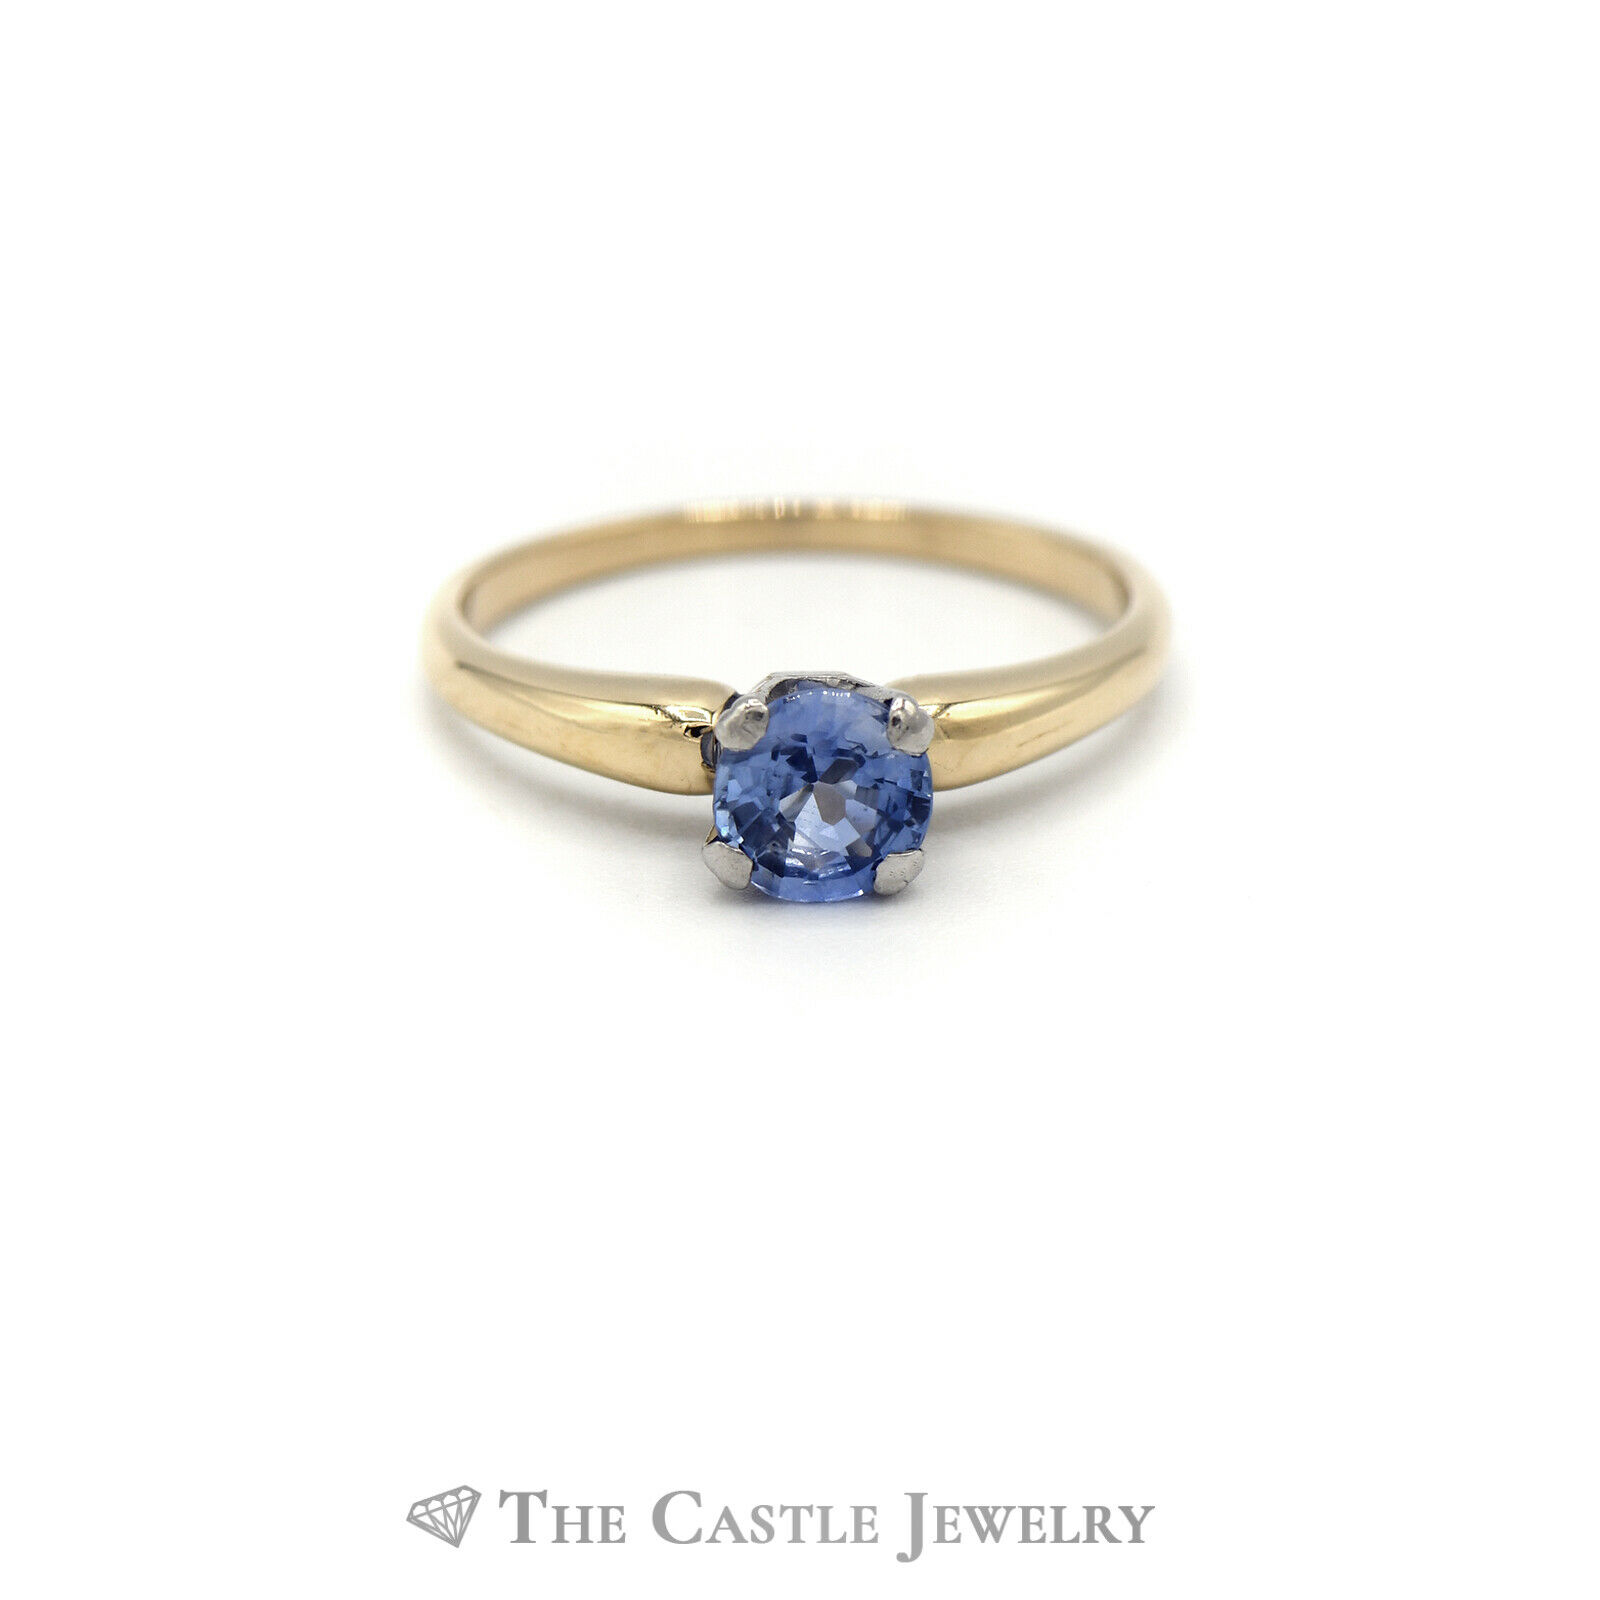 Round Tanzanite Solitaire Ring in 14KT Yellow Gold - image 1